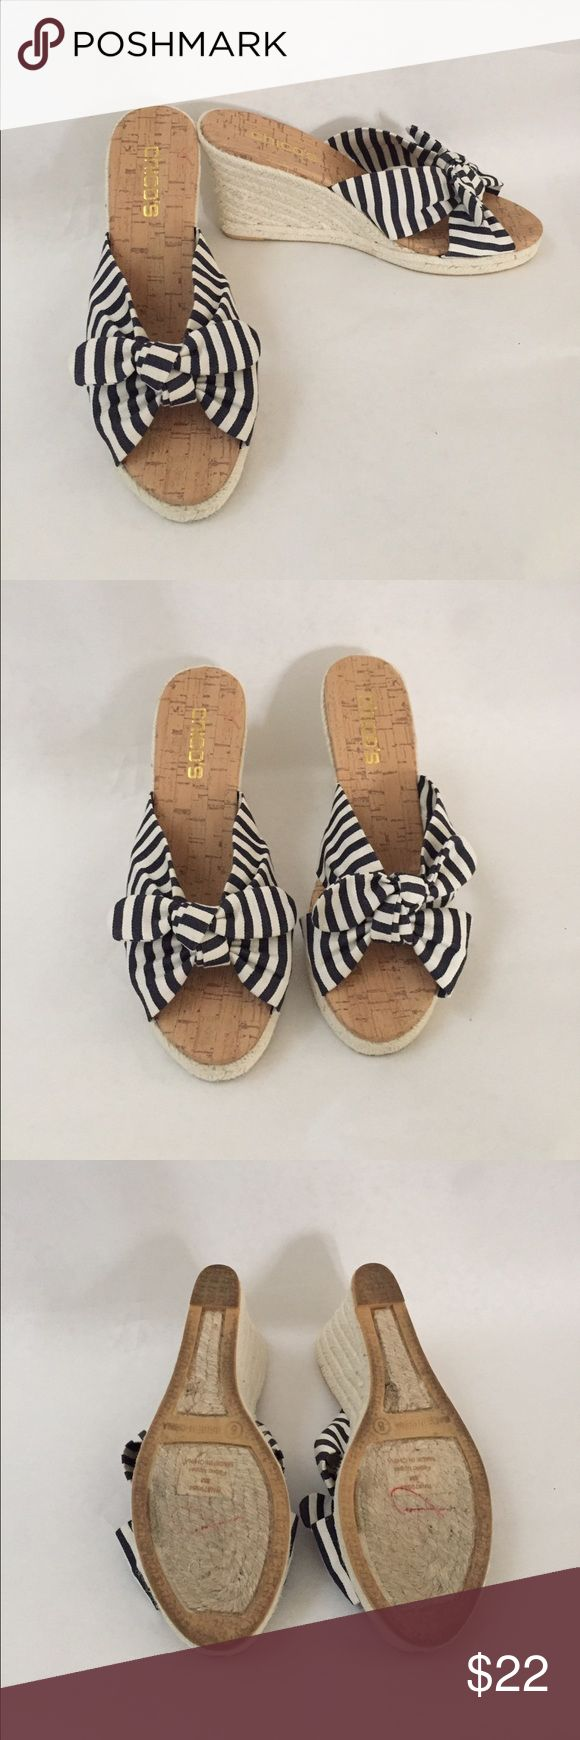 Chico's striped wedge sandals size 8 Like new! Navy blue and white striped wedge sandals with cork sole. Worn once, comes from pet and smoke free home. Heel about 3 1/2in Chico's Shoes Wedges